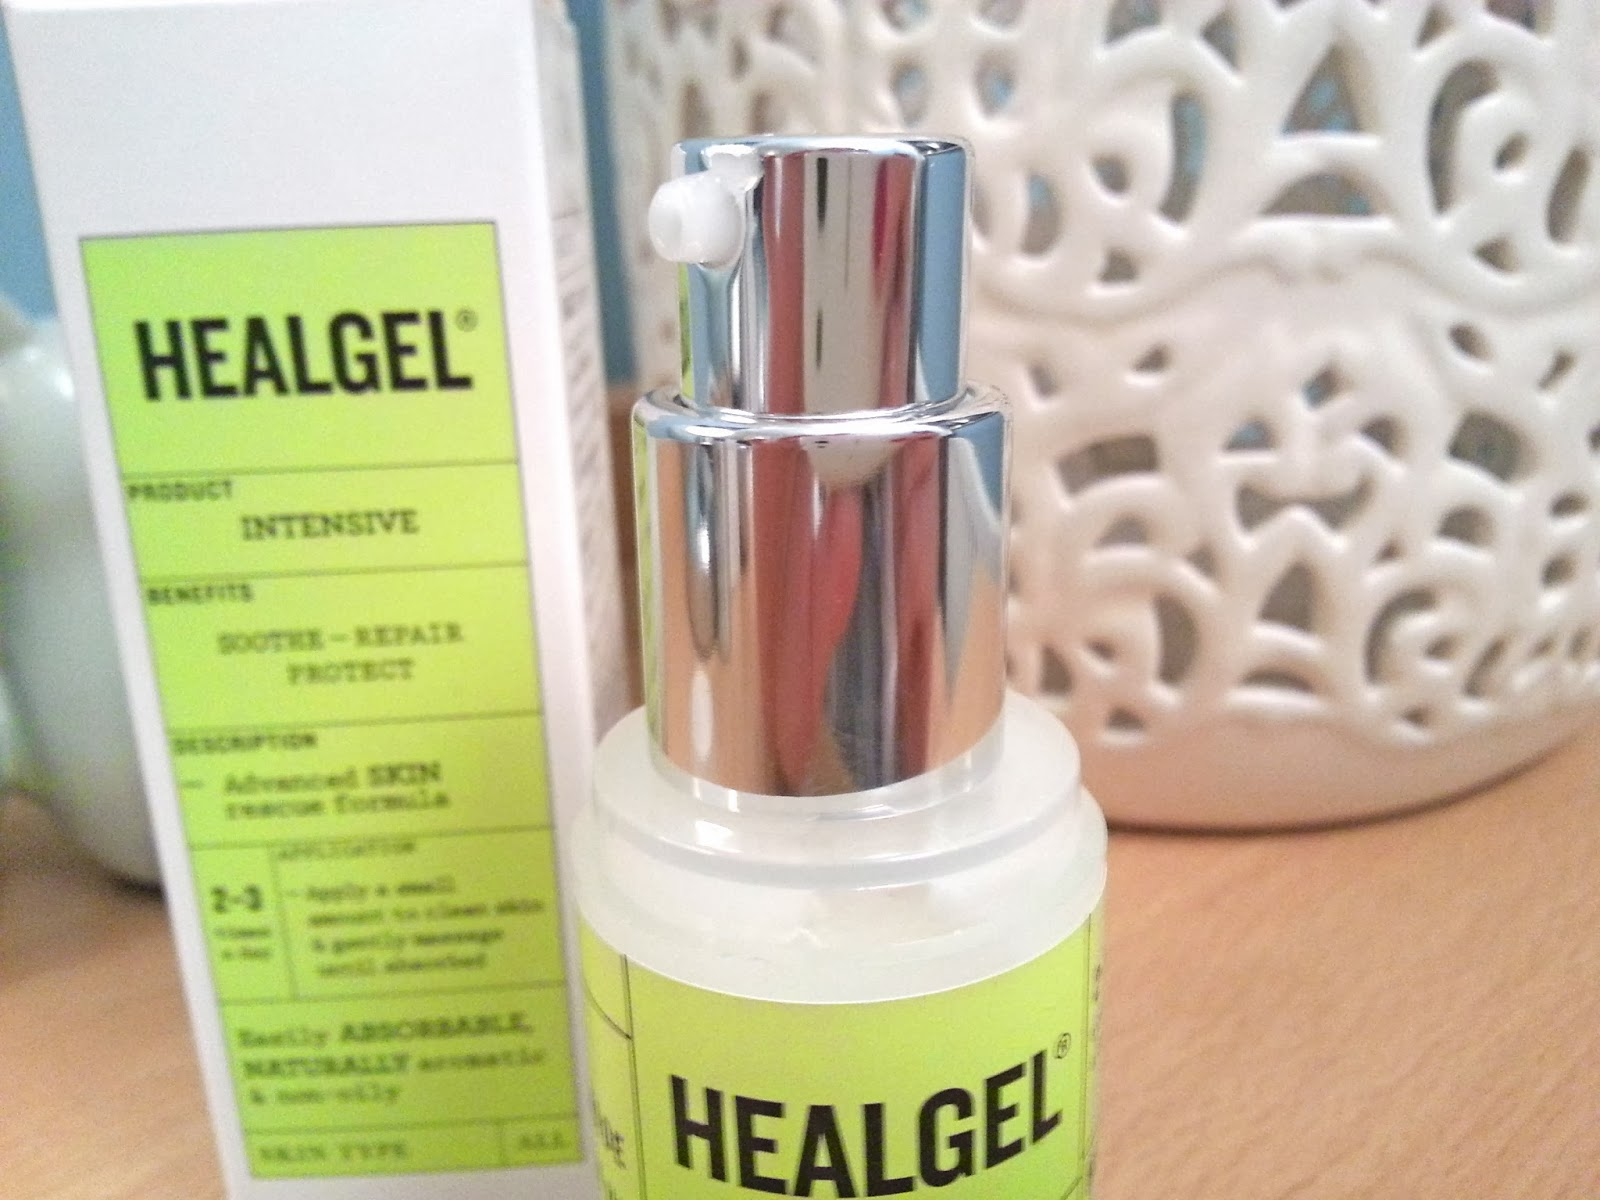 HealGel Intensive Review